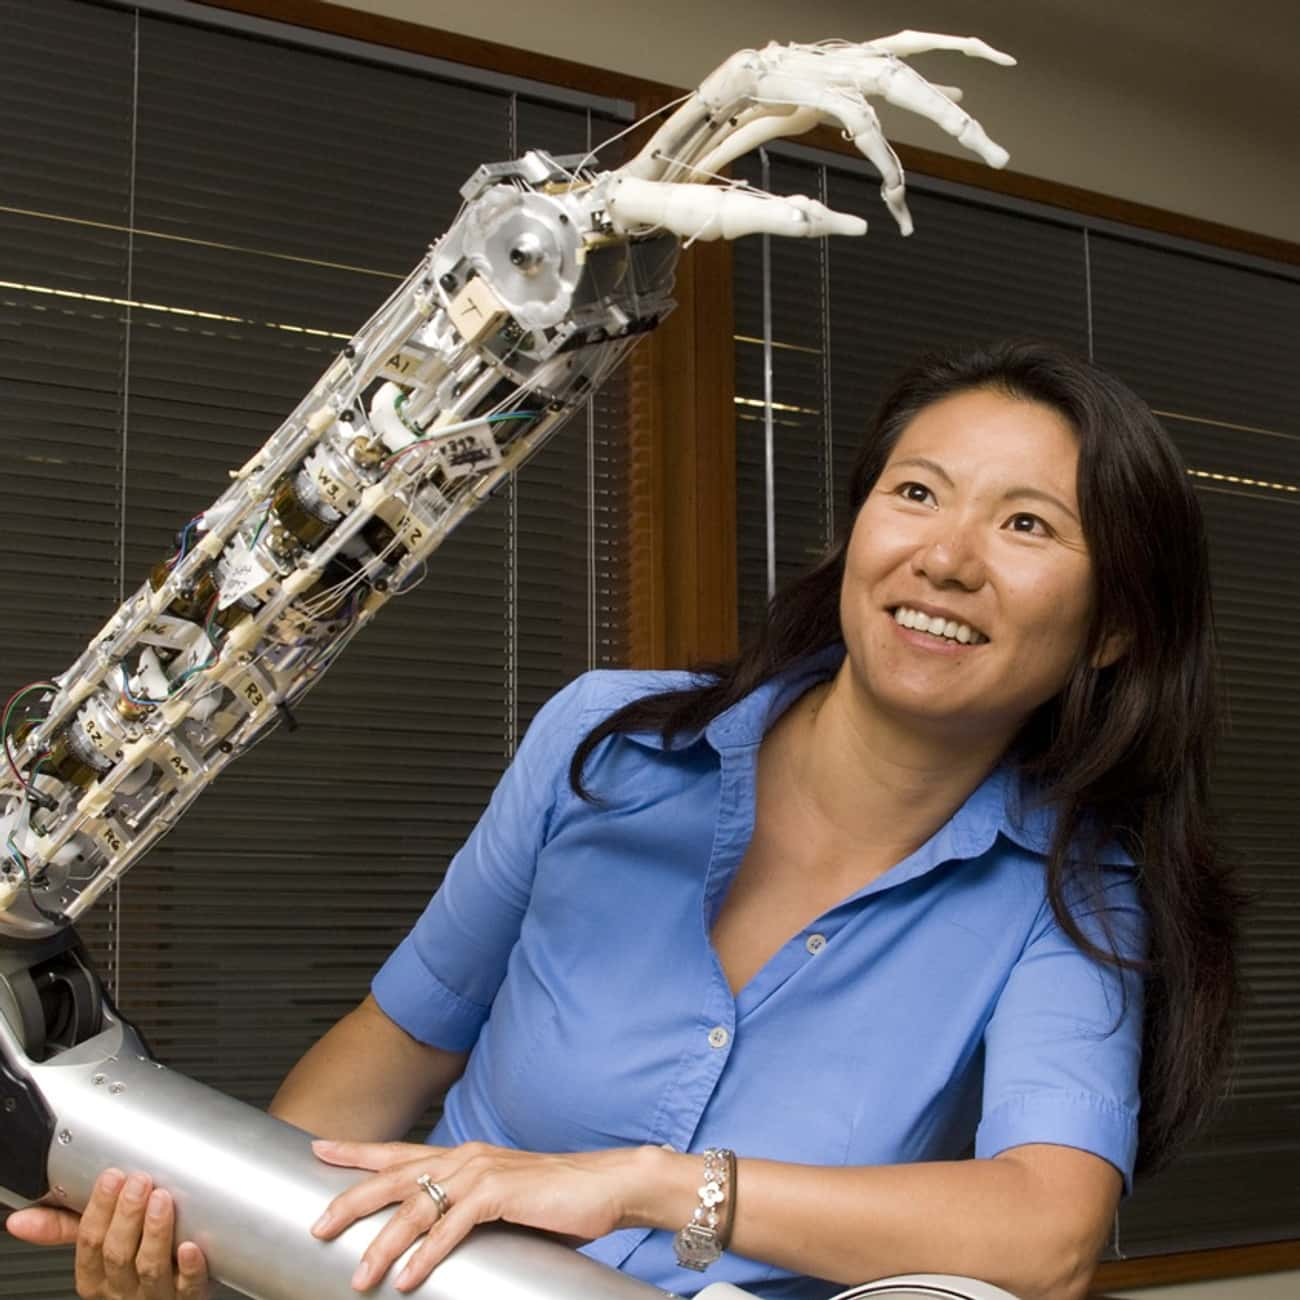 Yoky Matsuoka is listed (or ranked) 4 on the list Famous Female Electrical Engineers